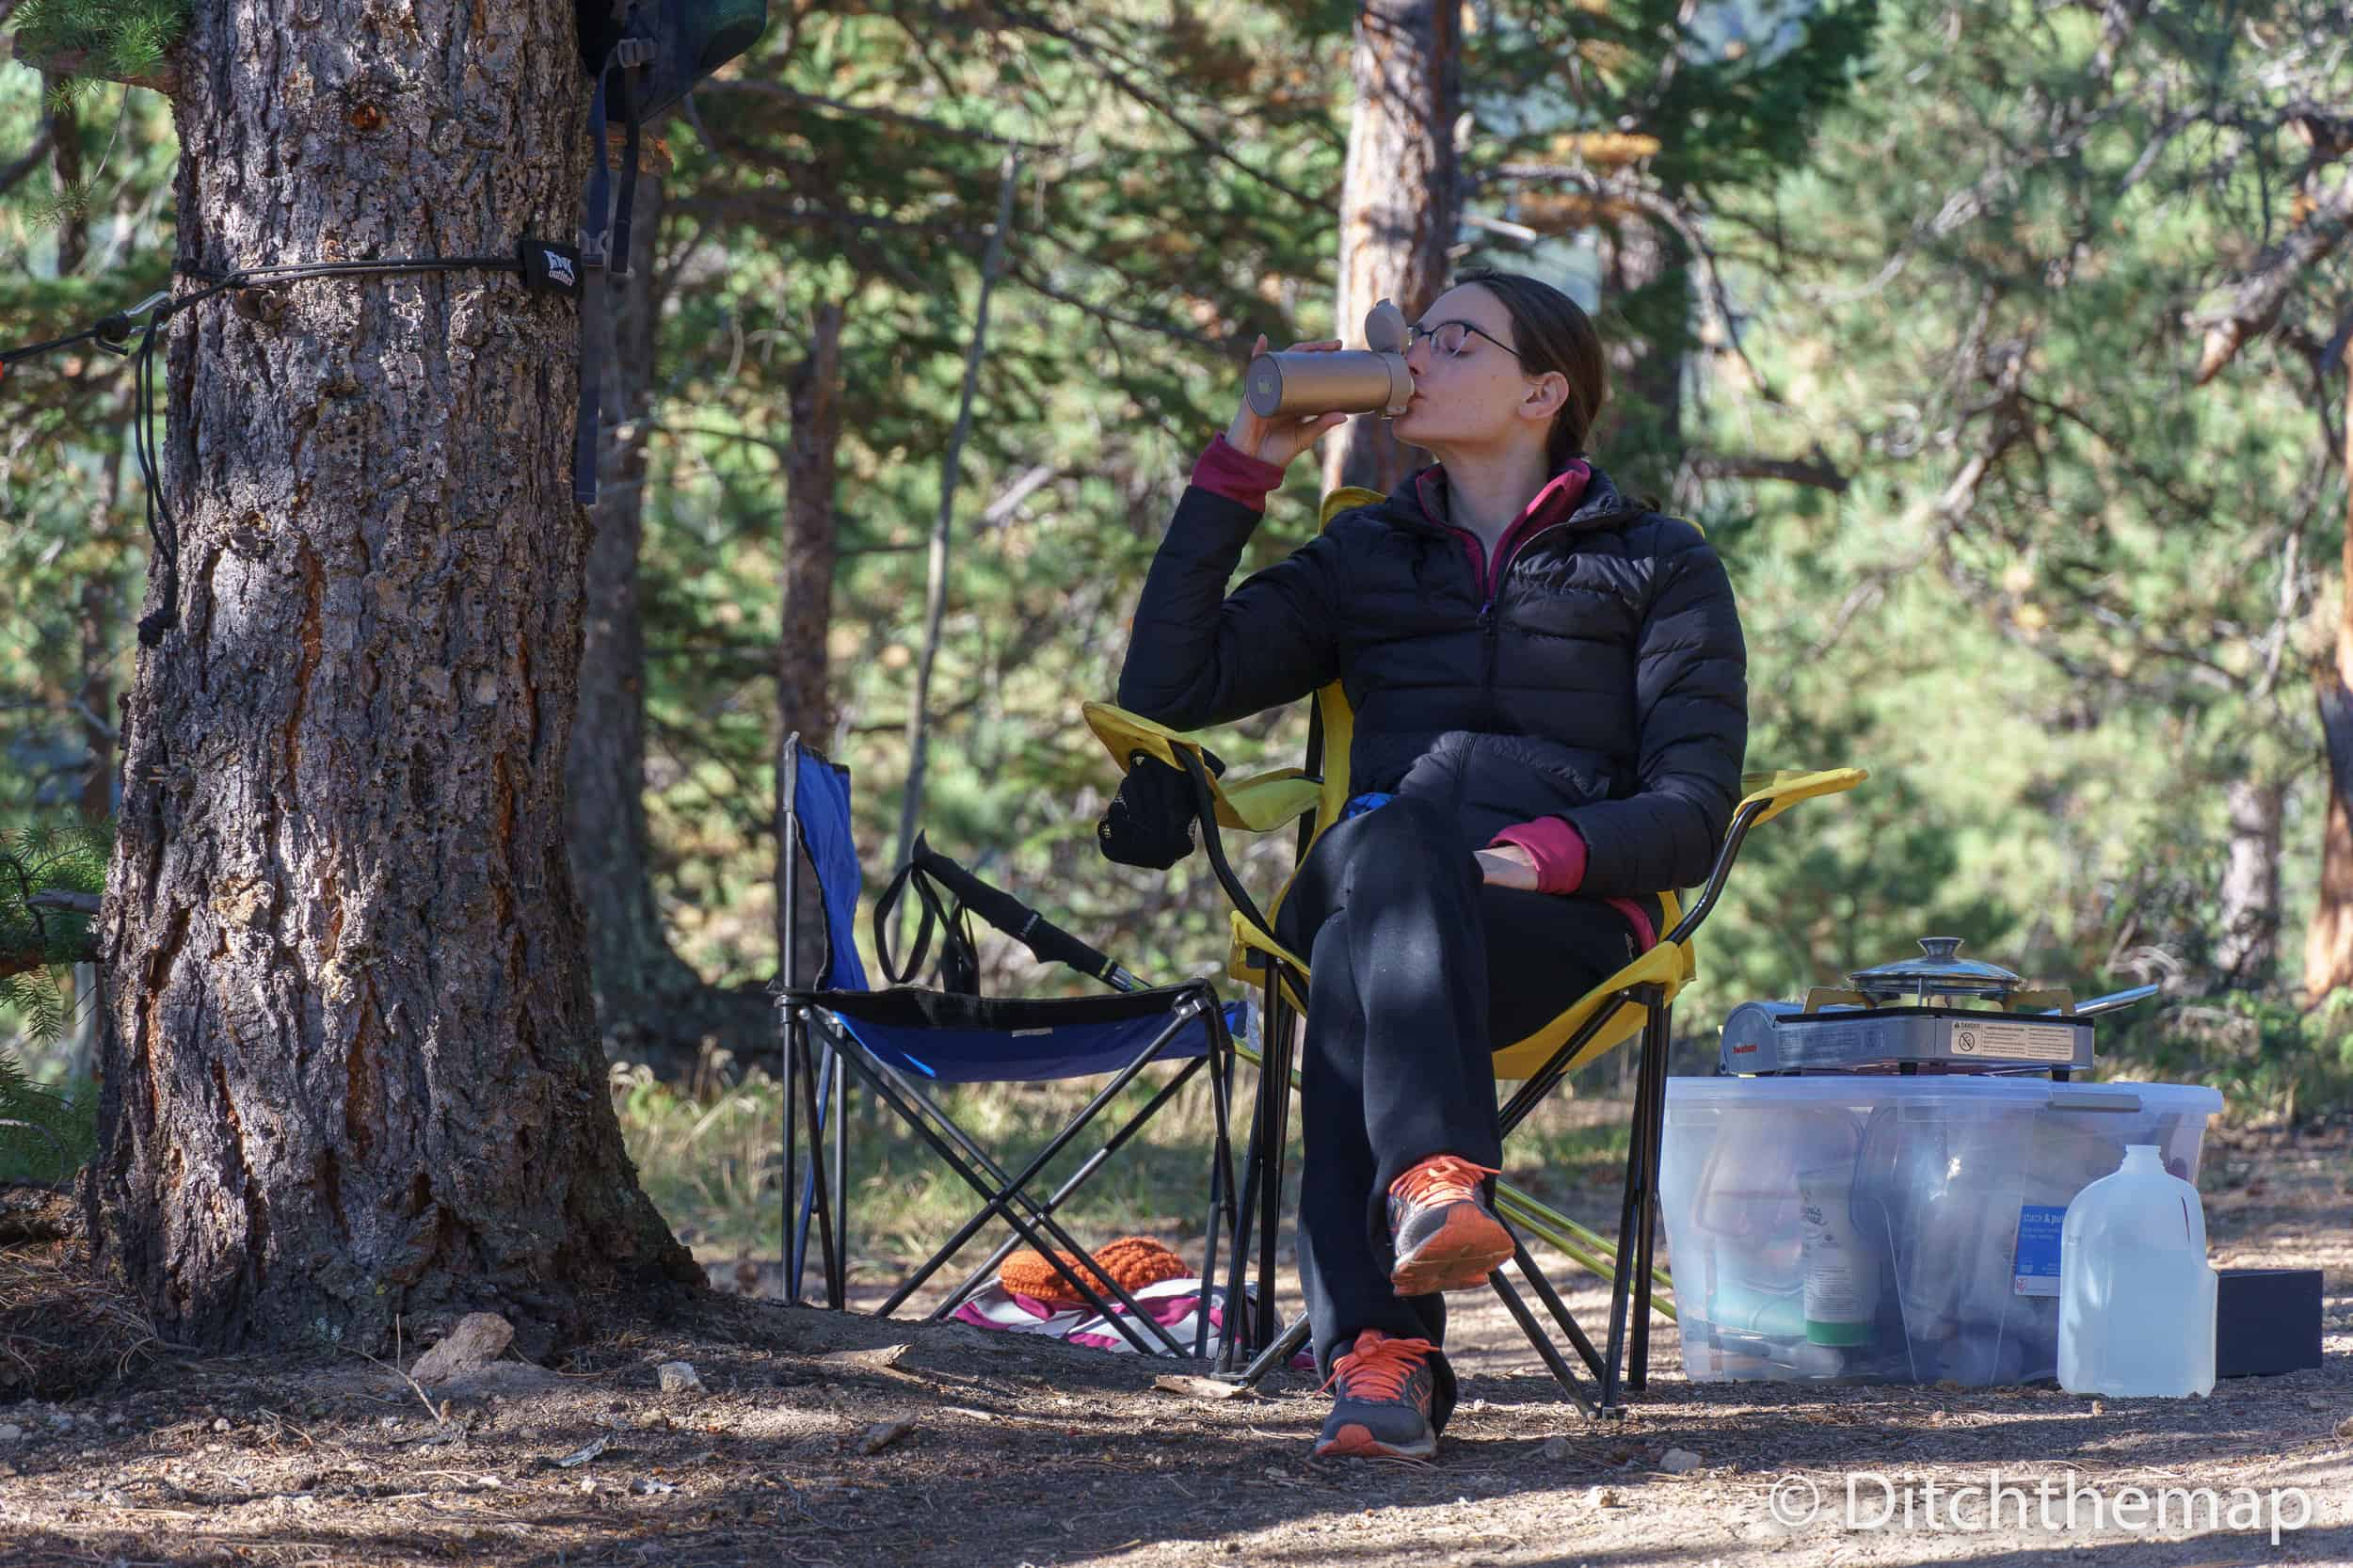 A woman enjoying her cup of tea while camping in the forest